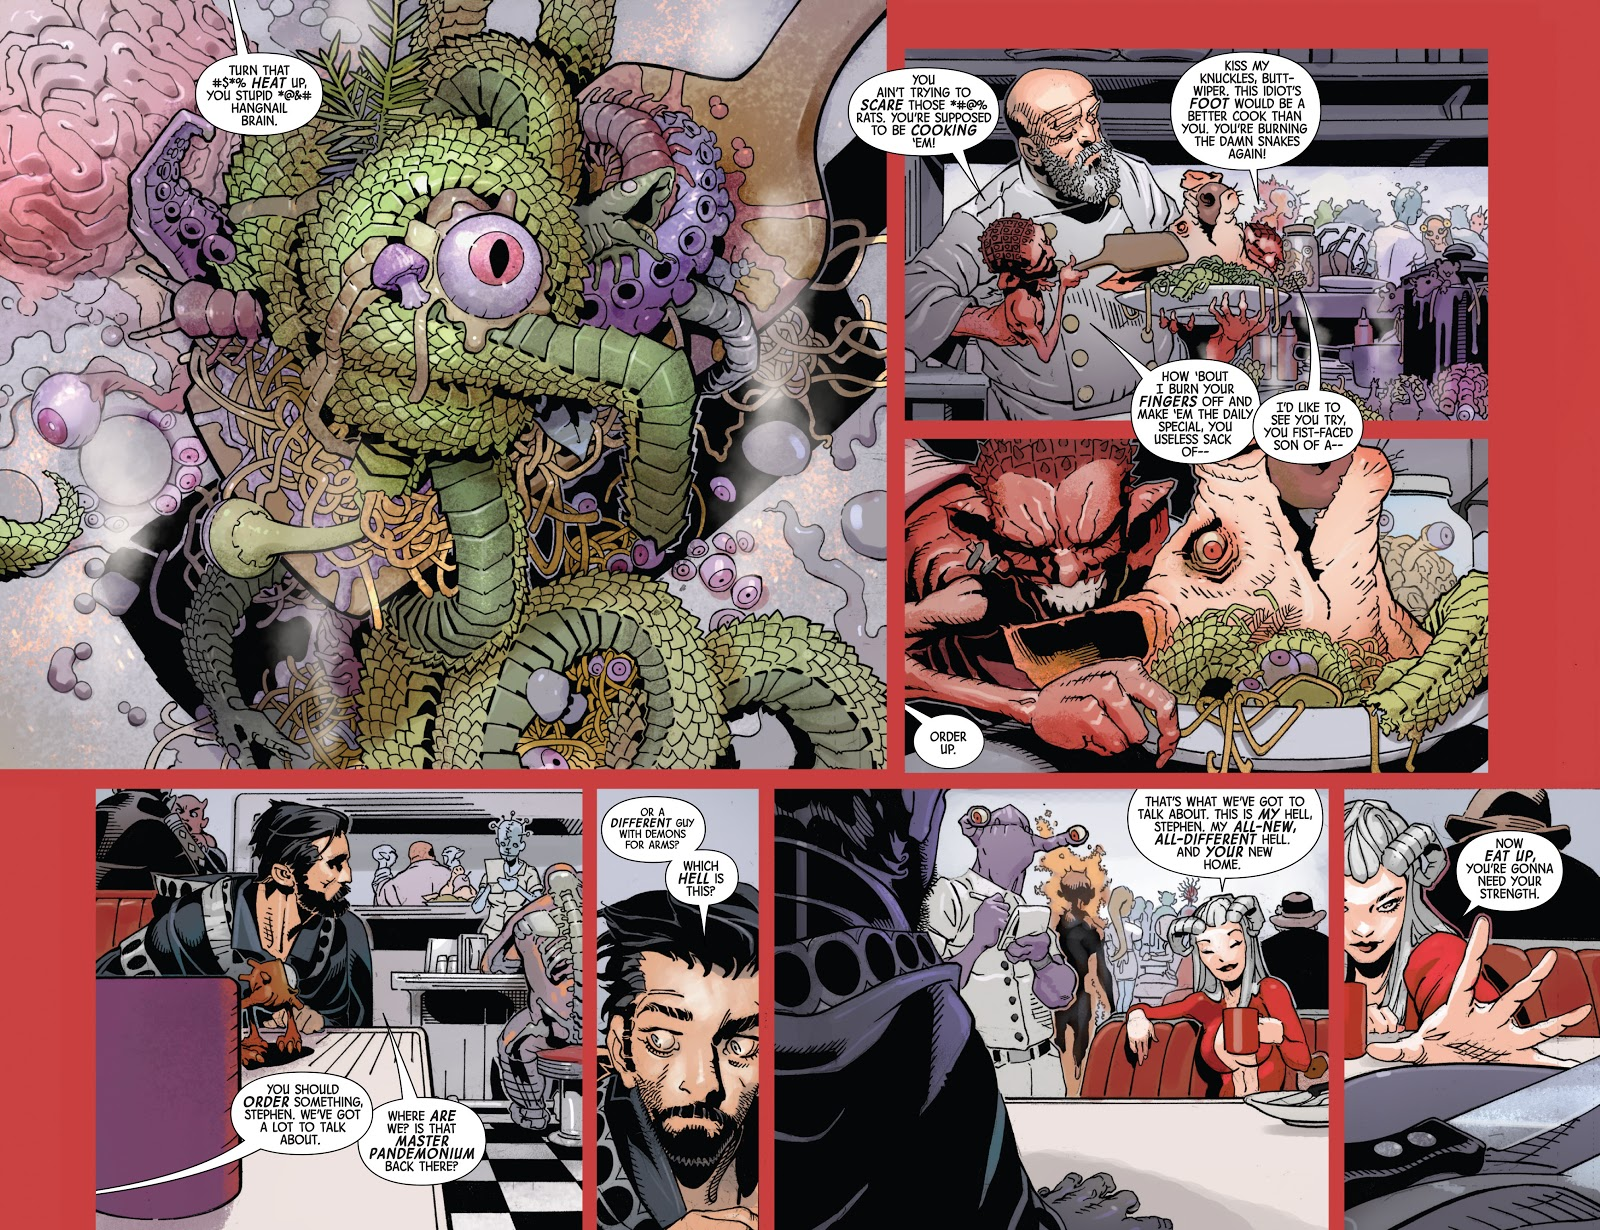 Doctor Strange by Jason Aaron V2 review